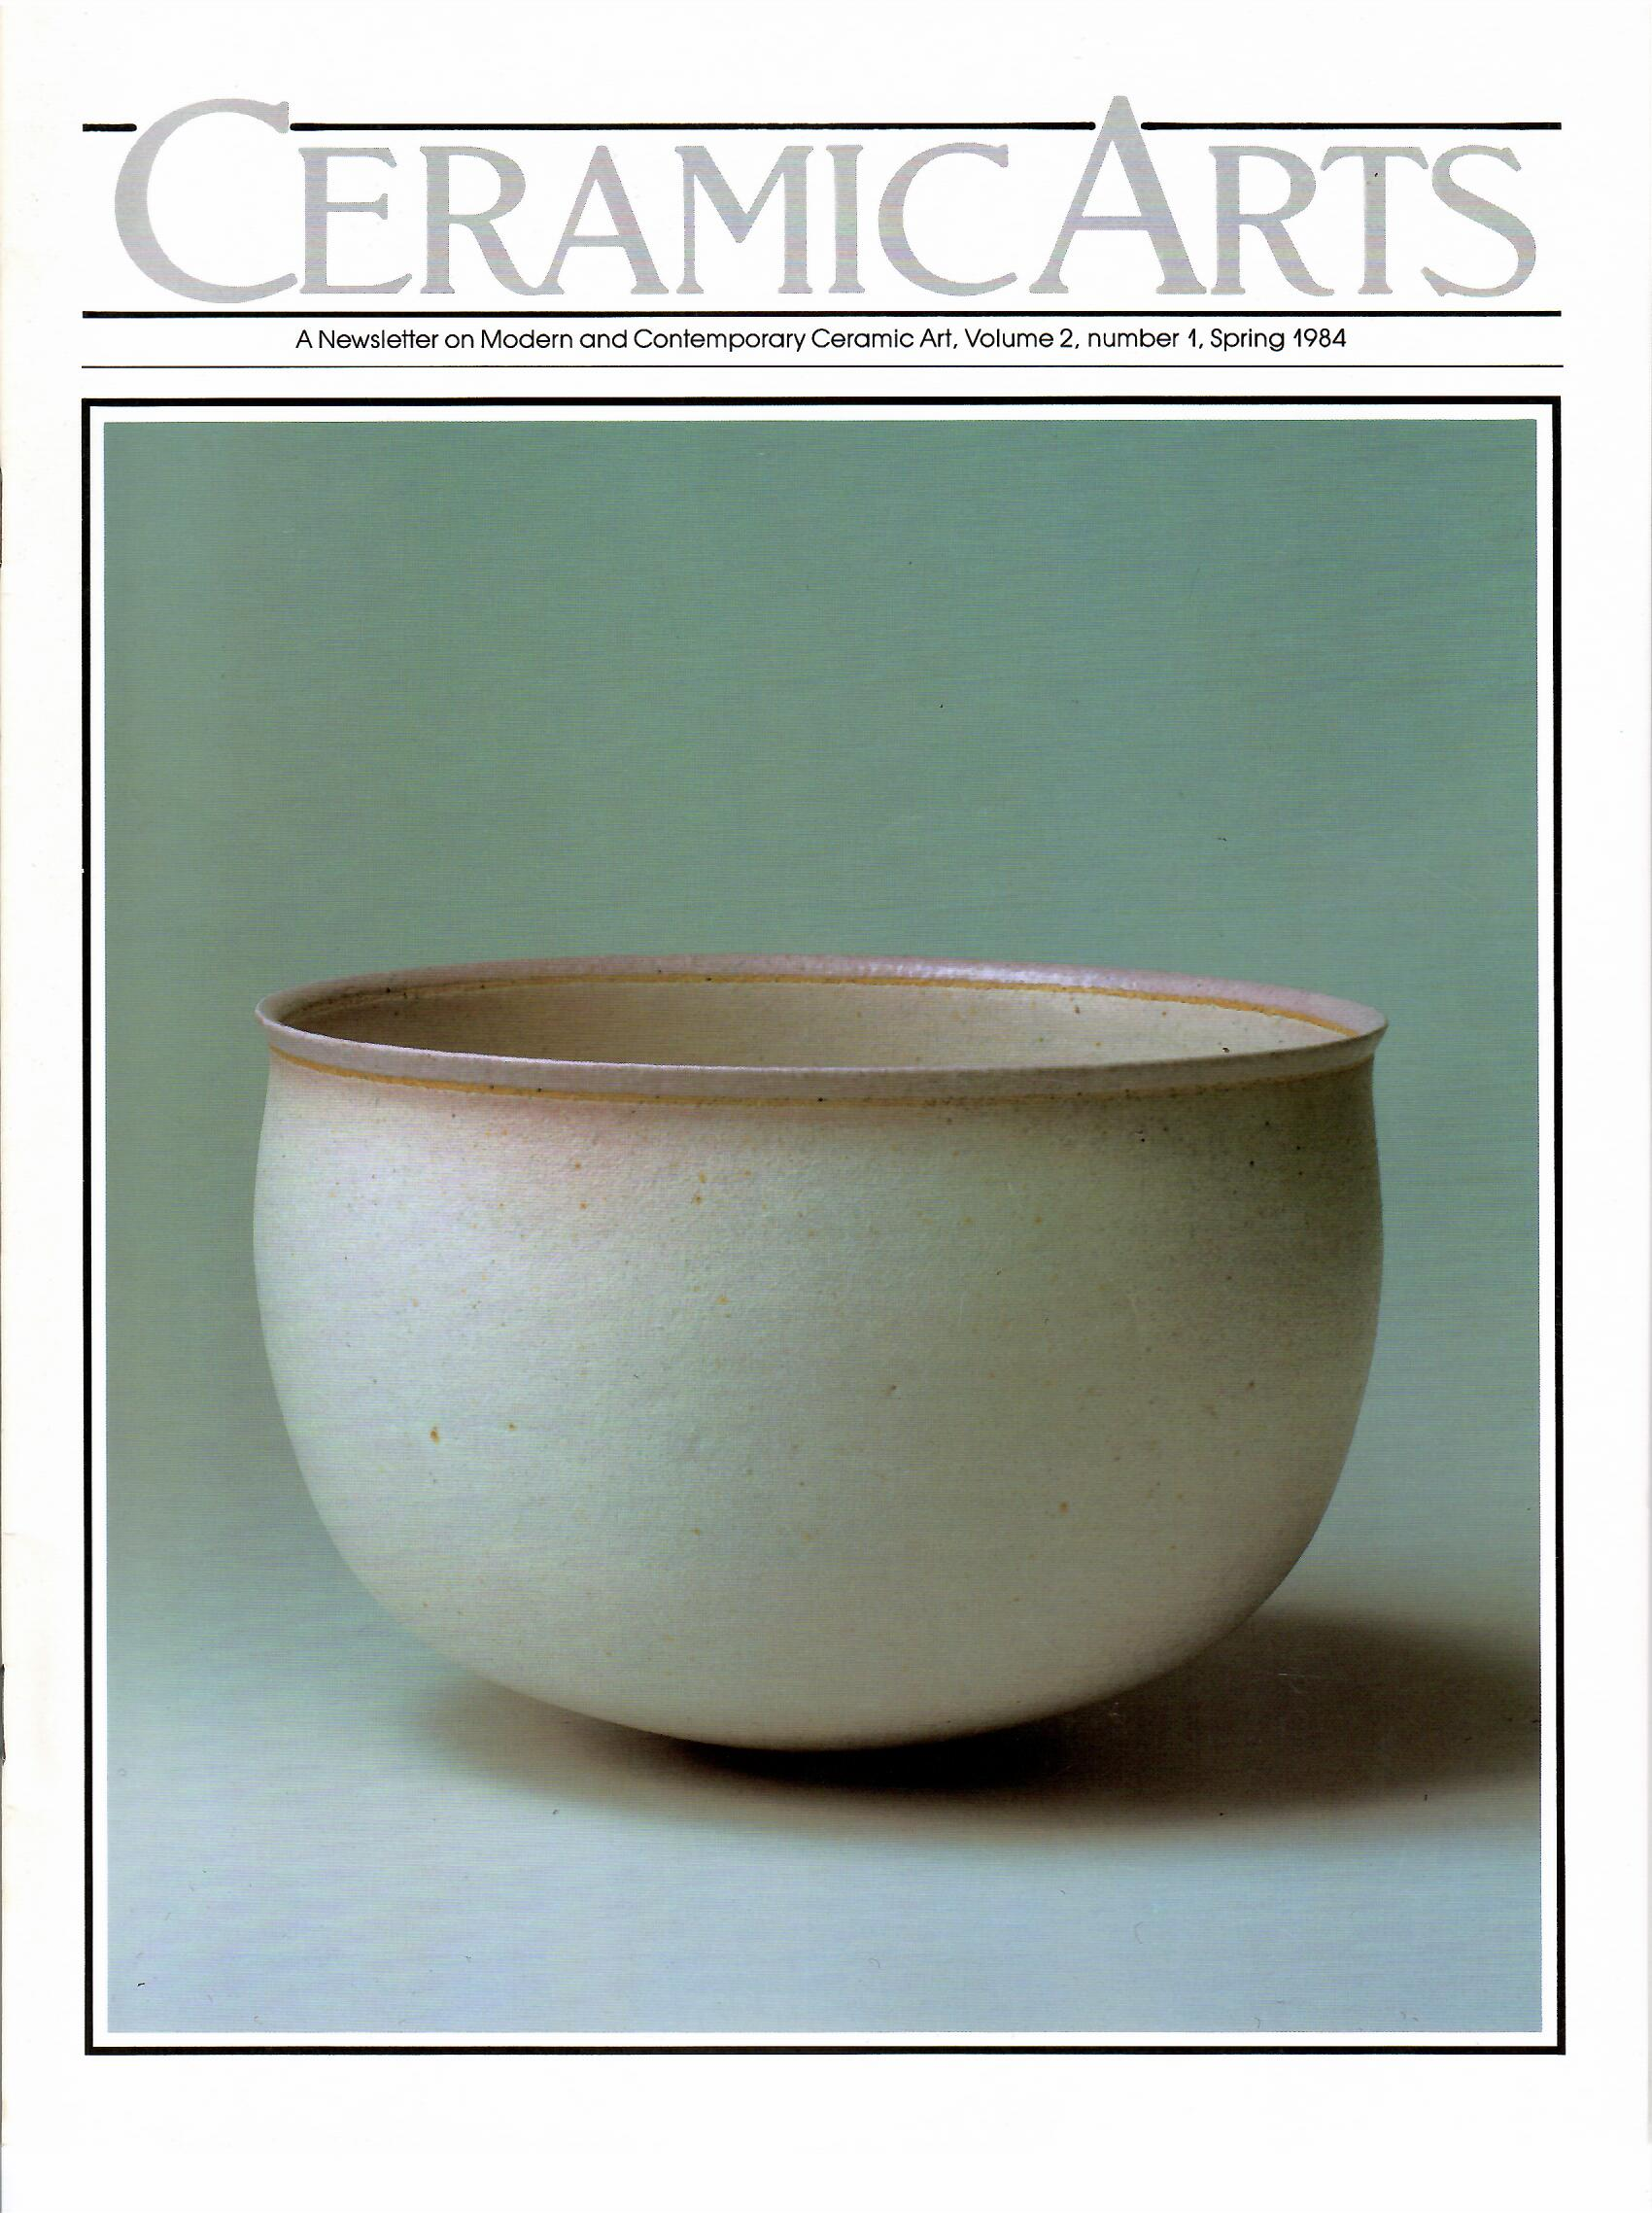 Image for Volume 2, Number 1, Spring 1984; CERAMIC ARTS